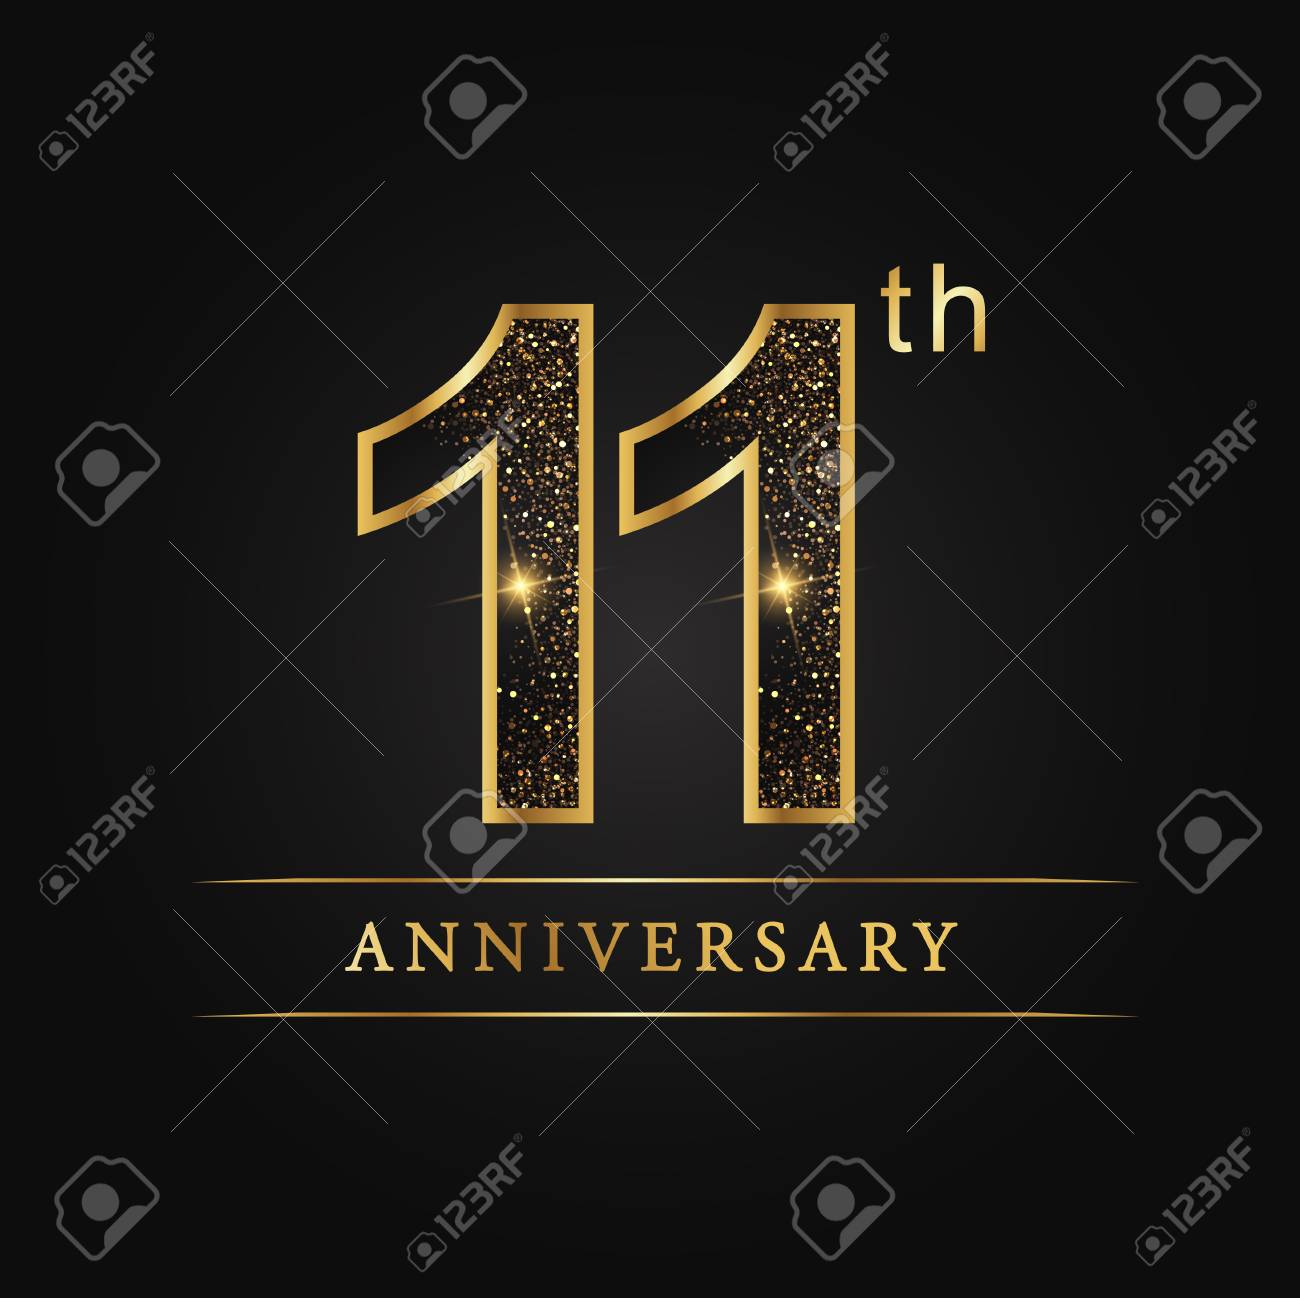 11 Years Anniversary Celebration Logotype 11th Anniversary Logo Royalty Free Cliparts Vectors And Stock Illustration Image 98968429